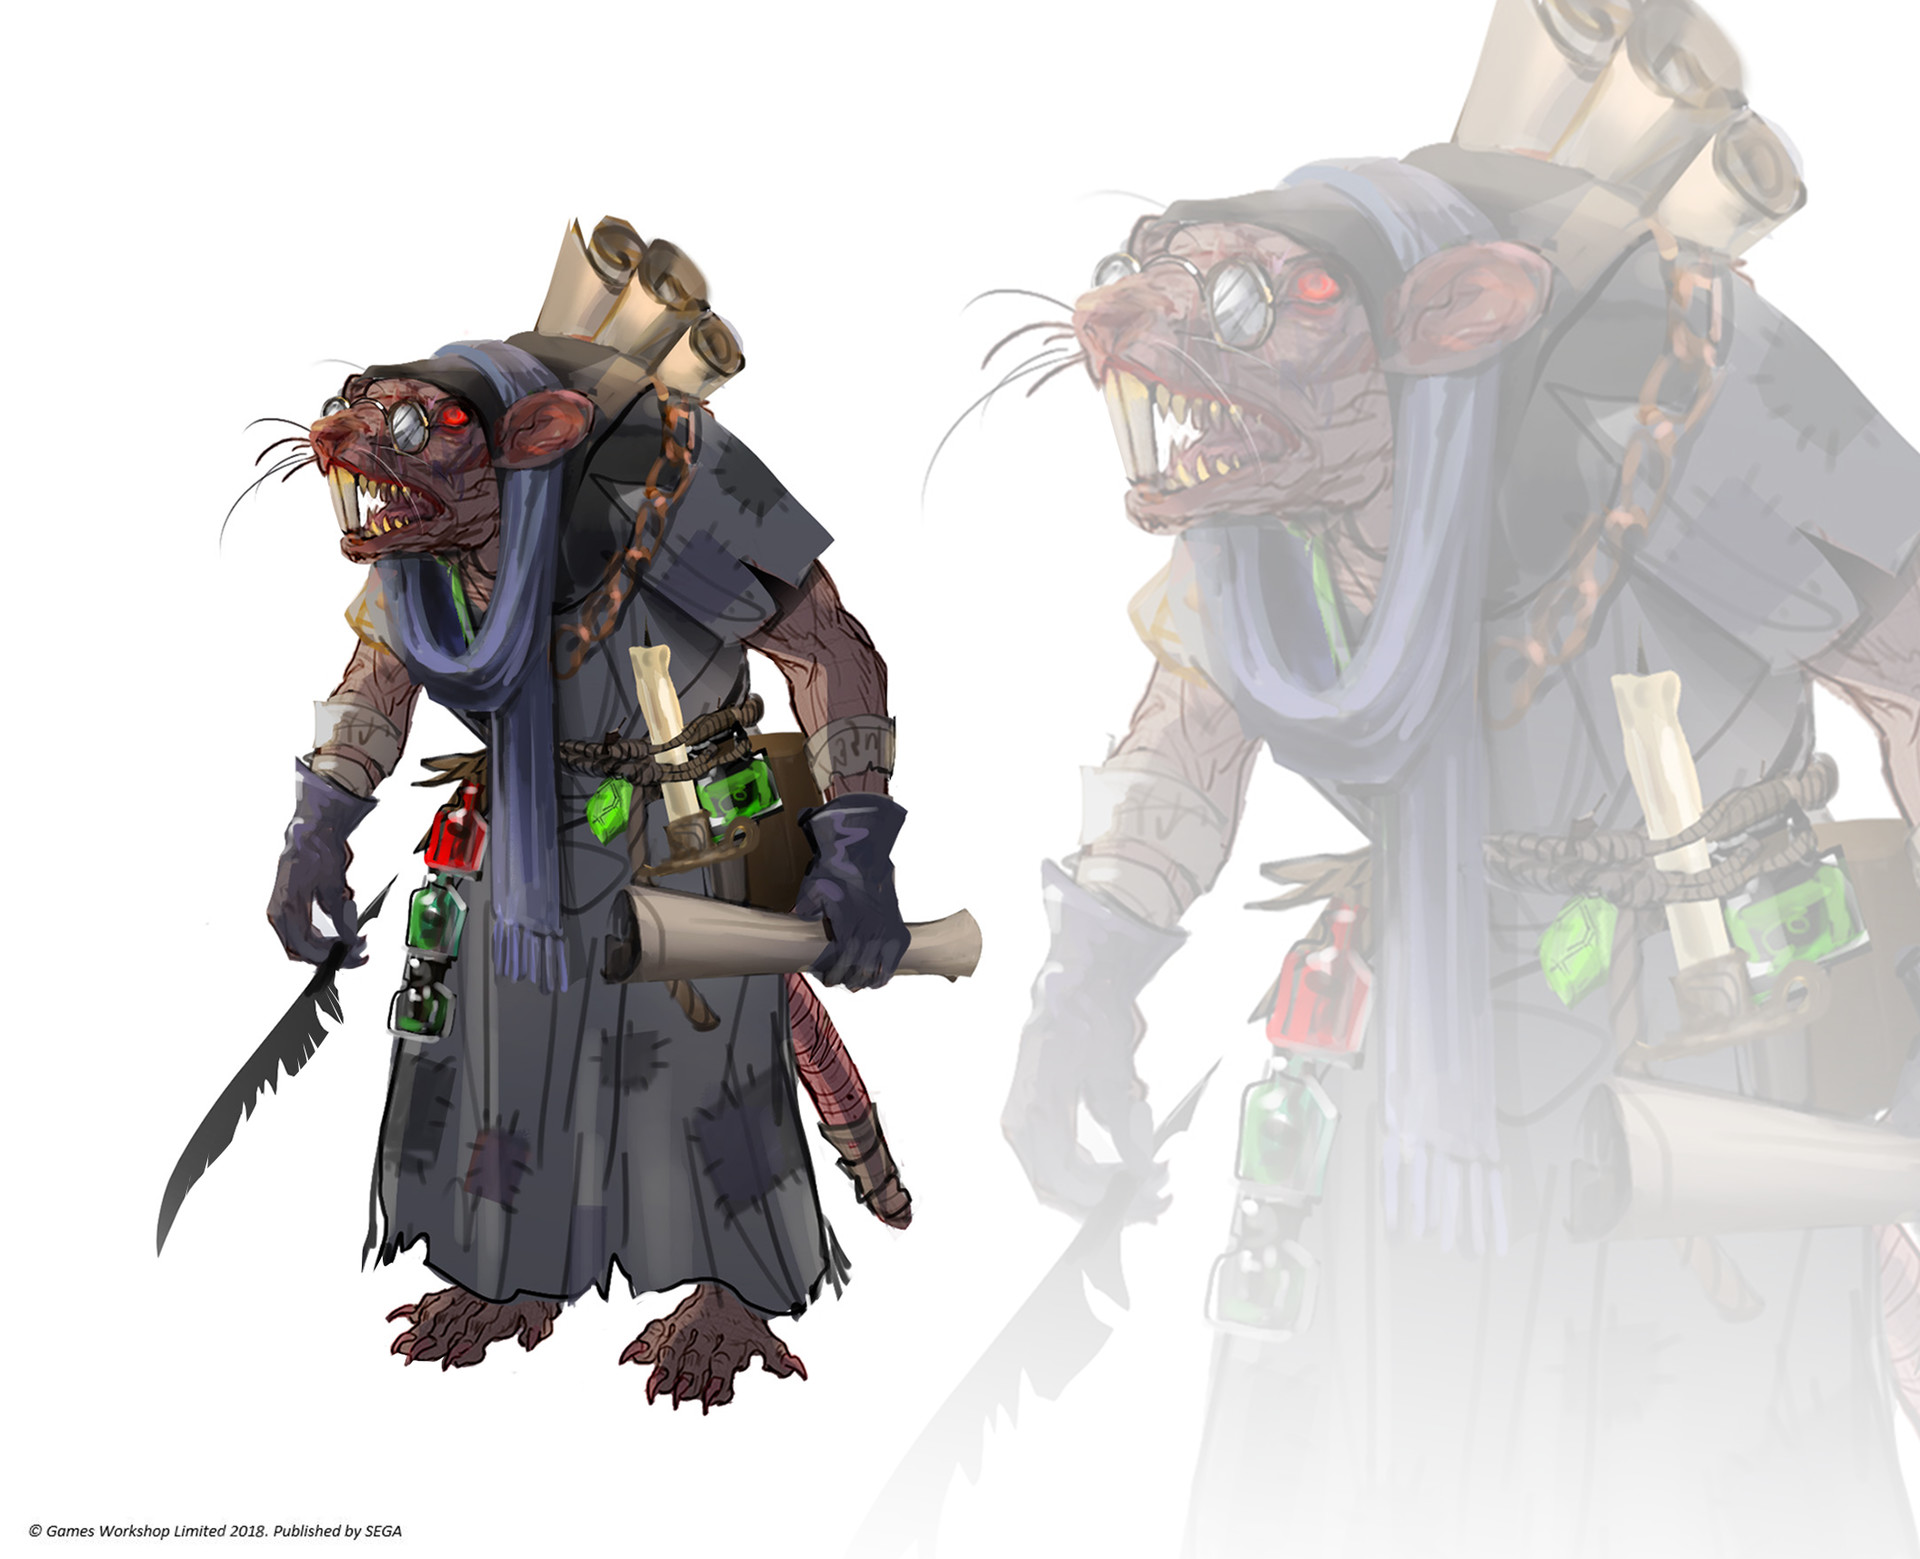 Sneek Scratchett - skaven scribe, hugely underestimated by rat society ;) One of the main characters in the Skaven Vortex storyline